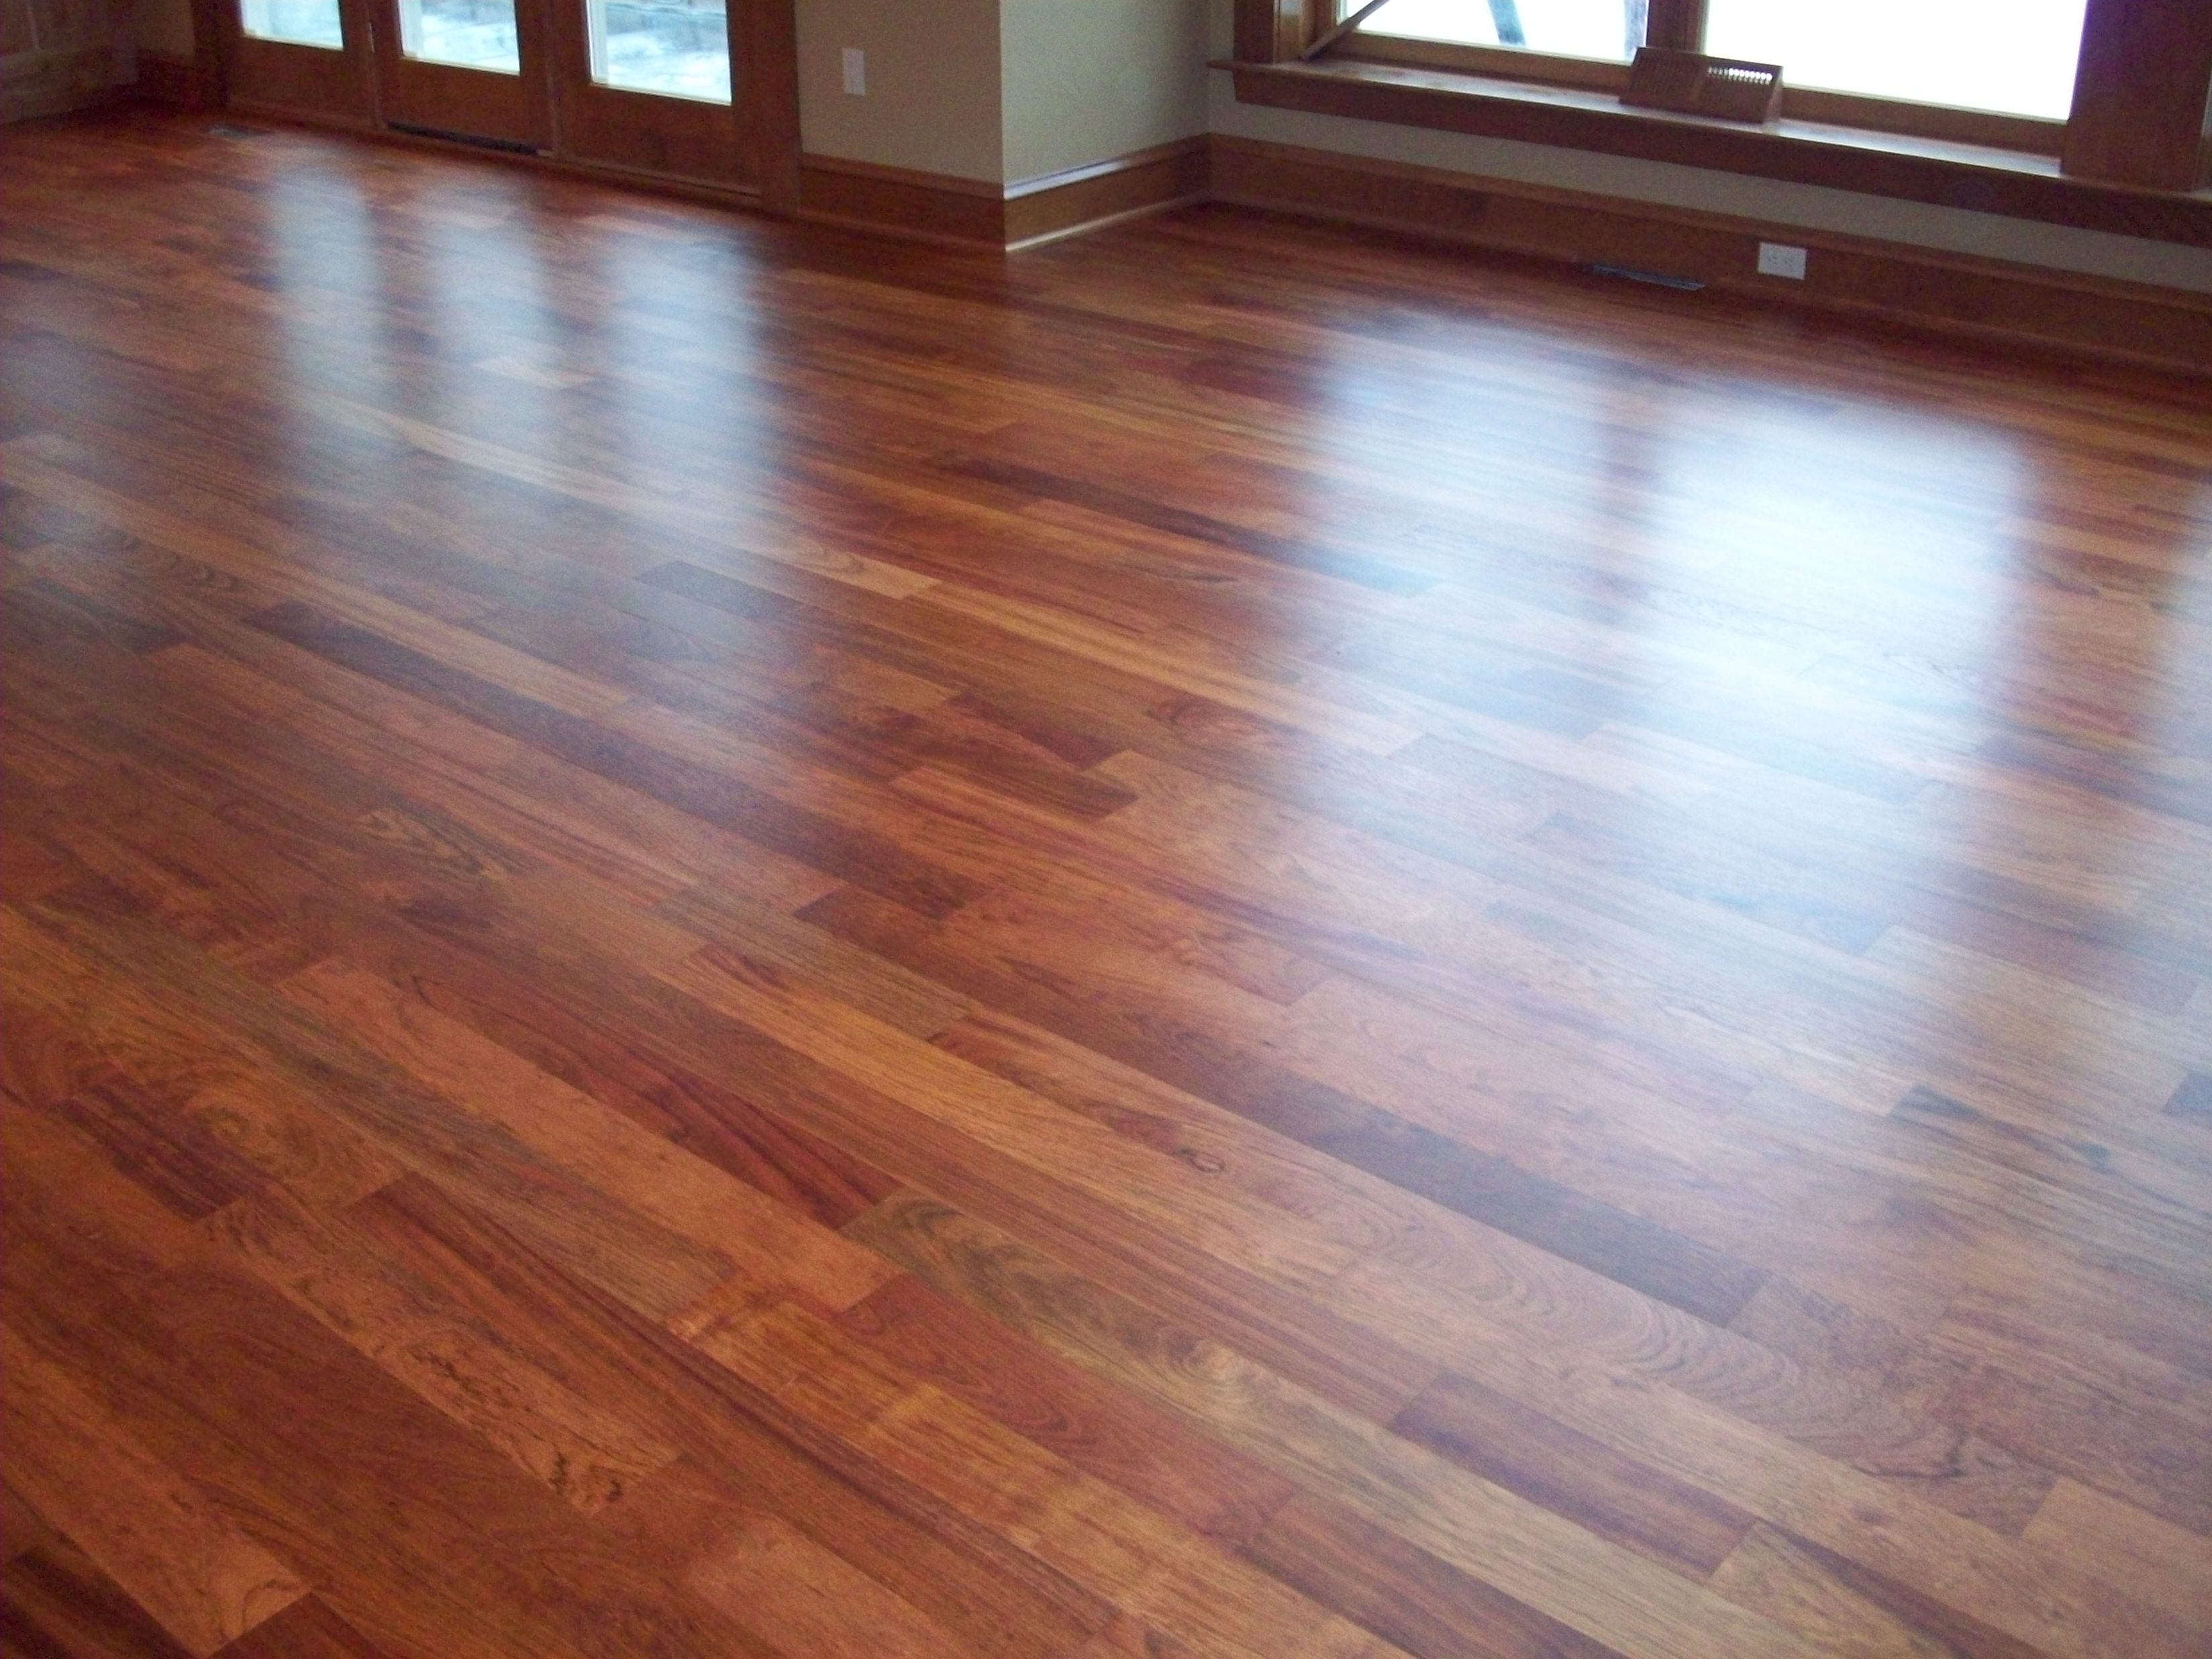 Flooring In House : How to care for hardwood floorspeaches n clean